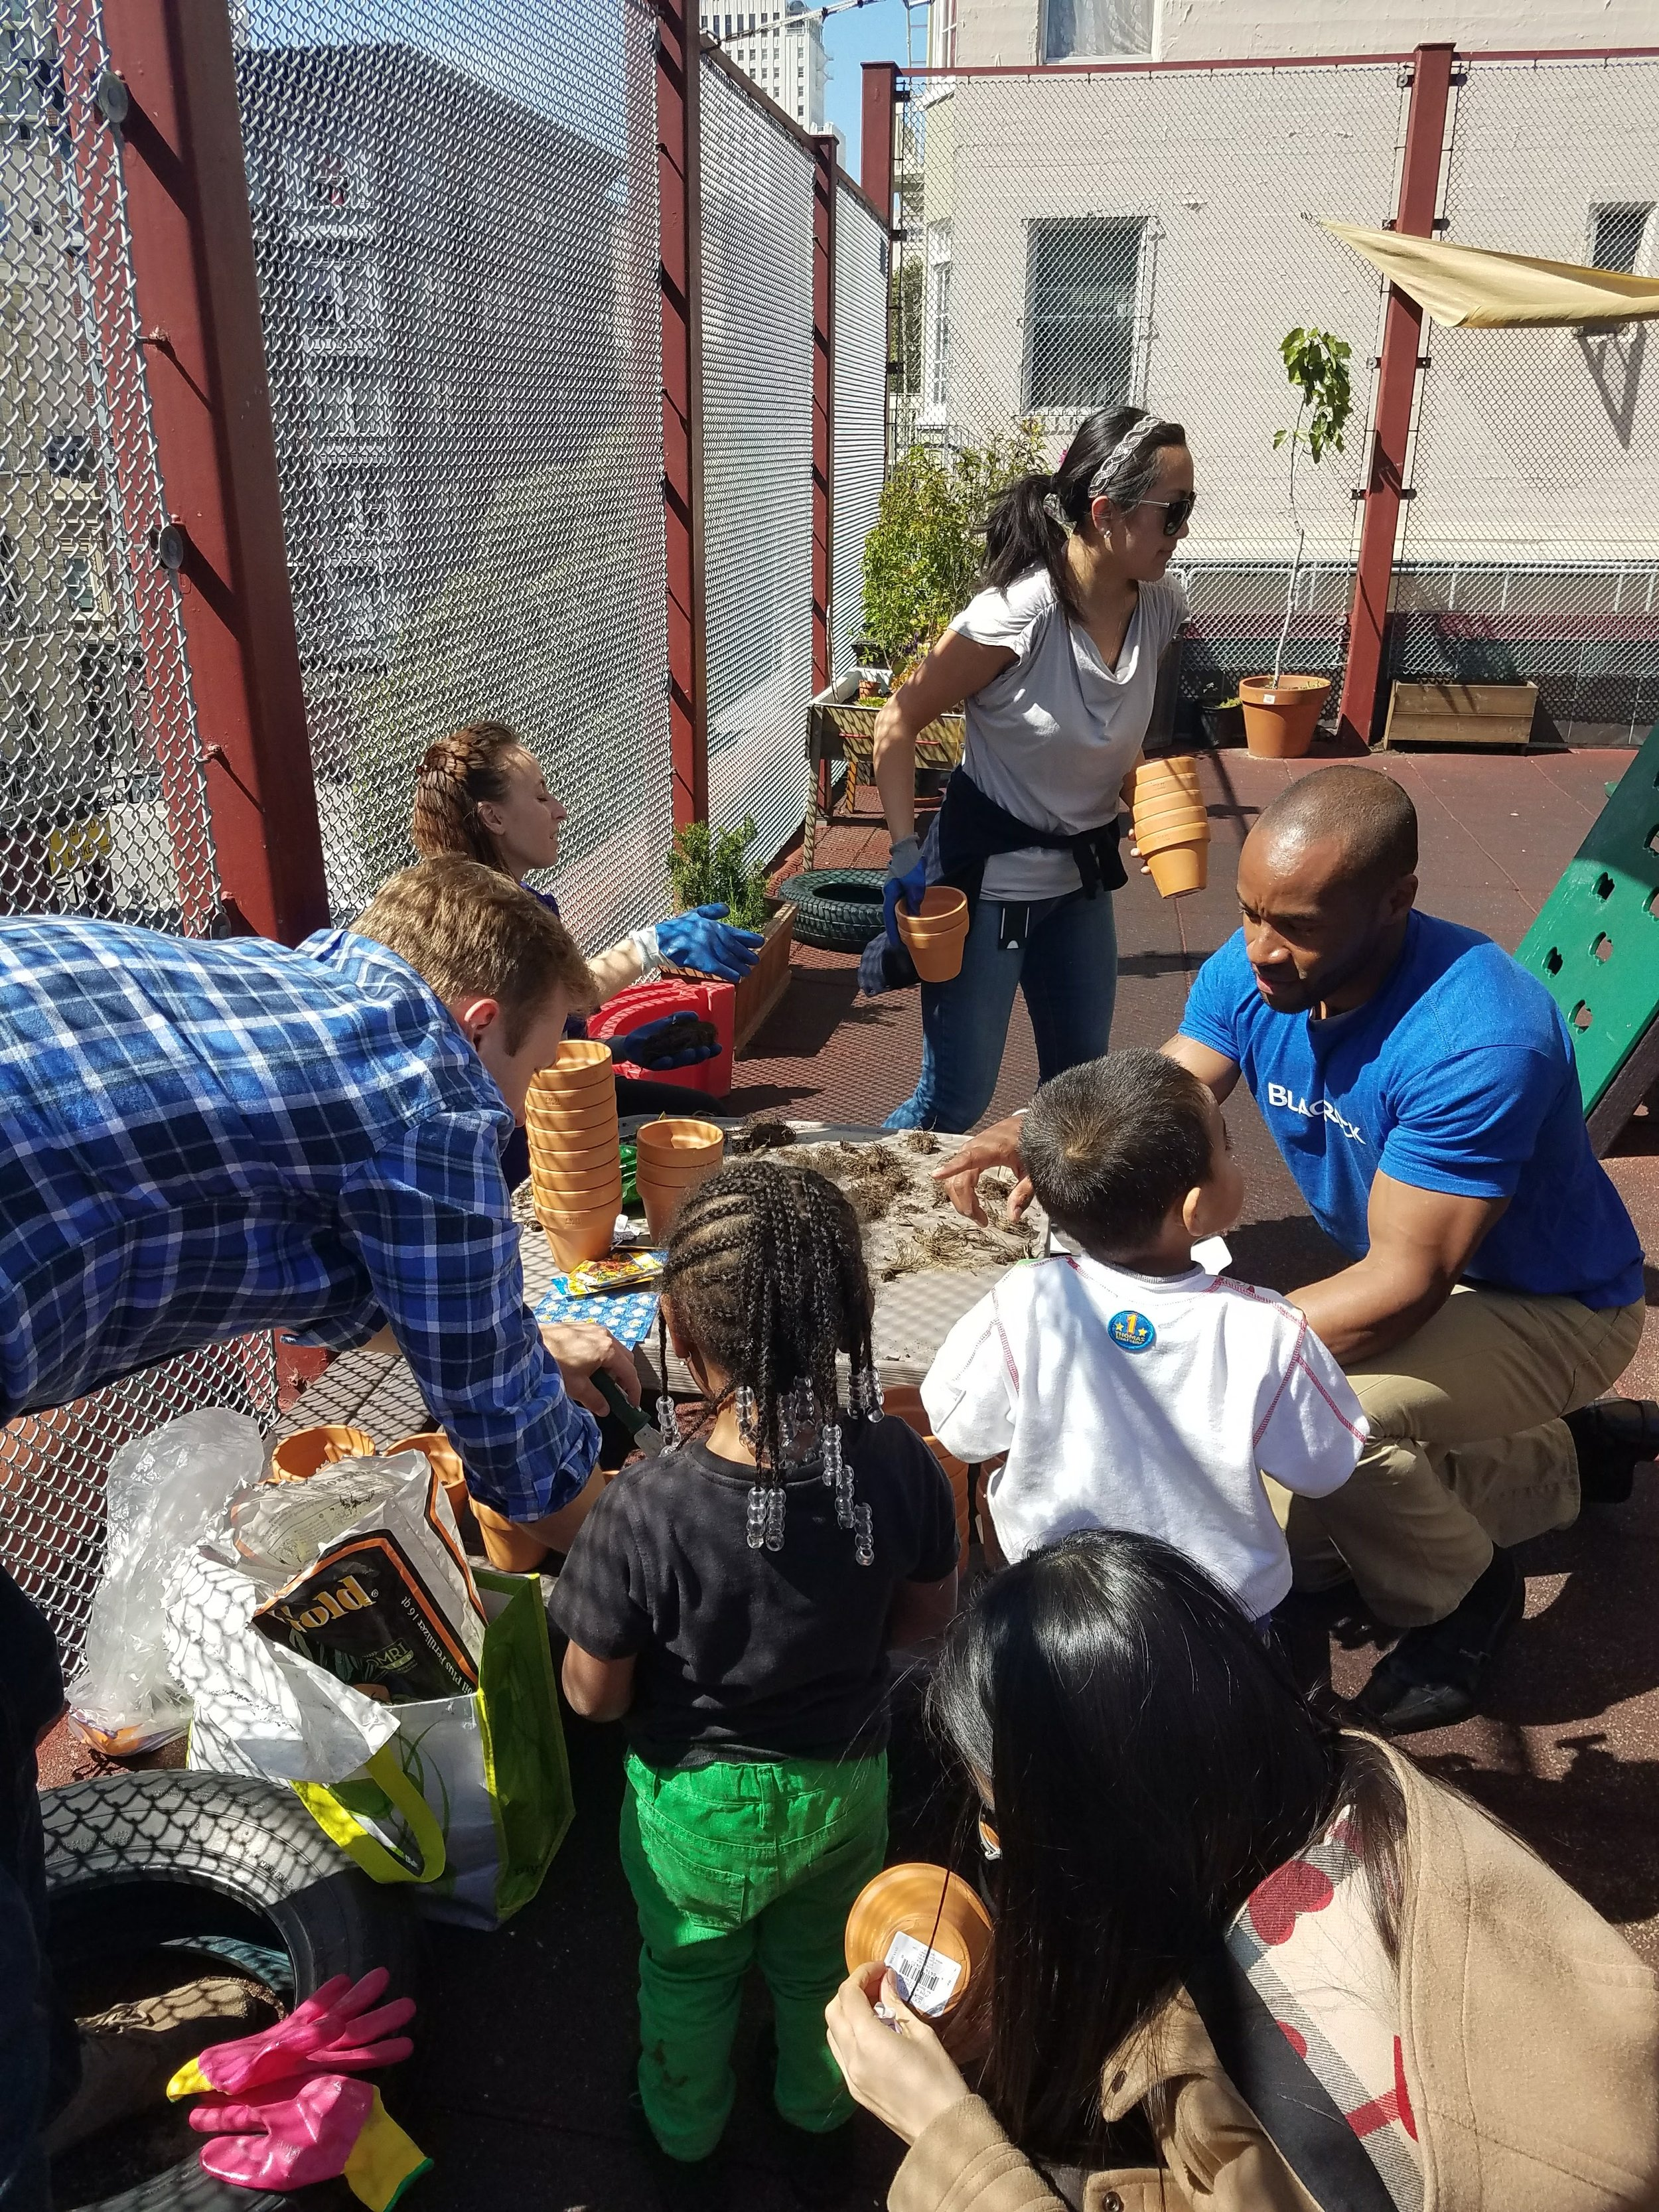 BlackRock employees helping our students at Compass Children's Center learn gardening.